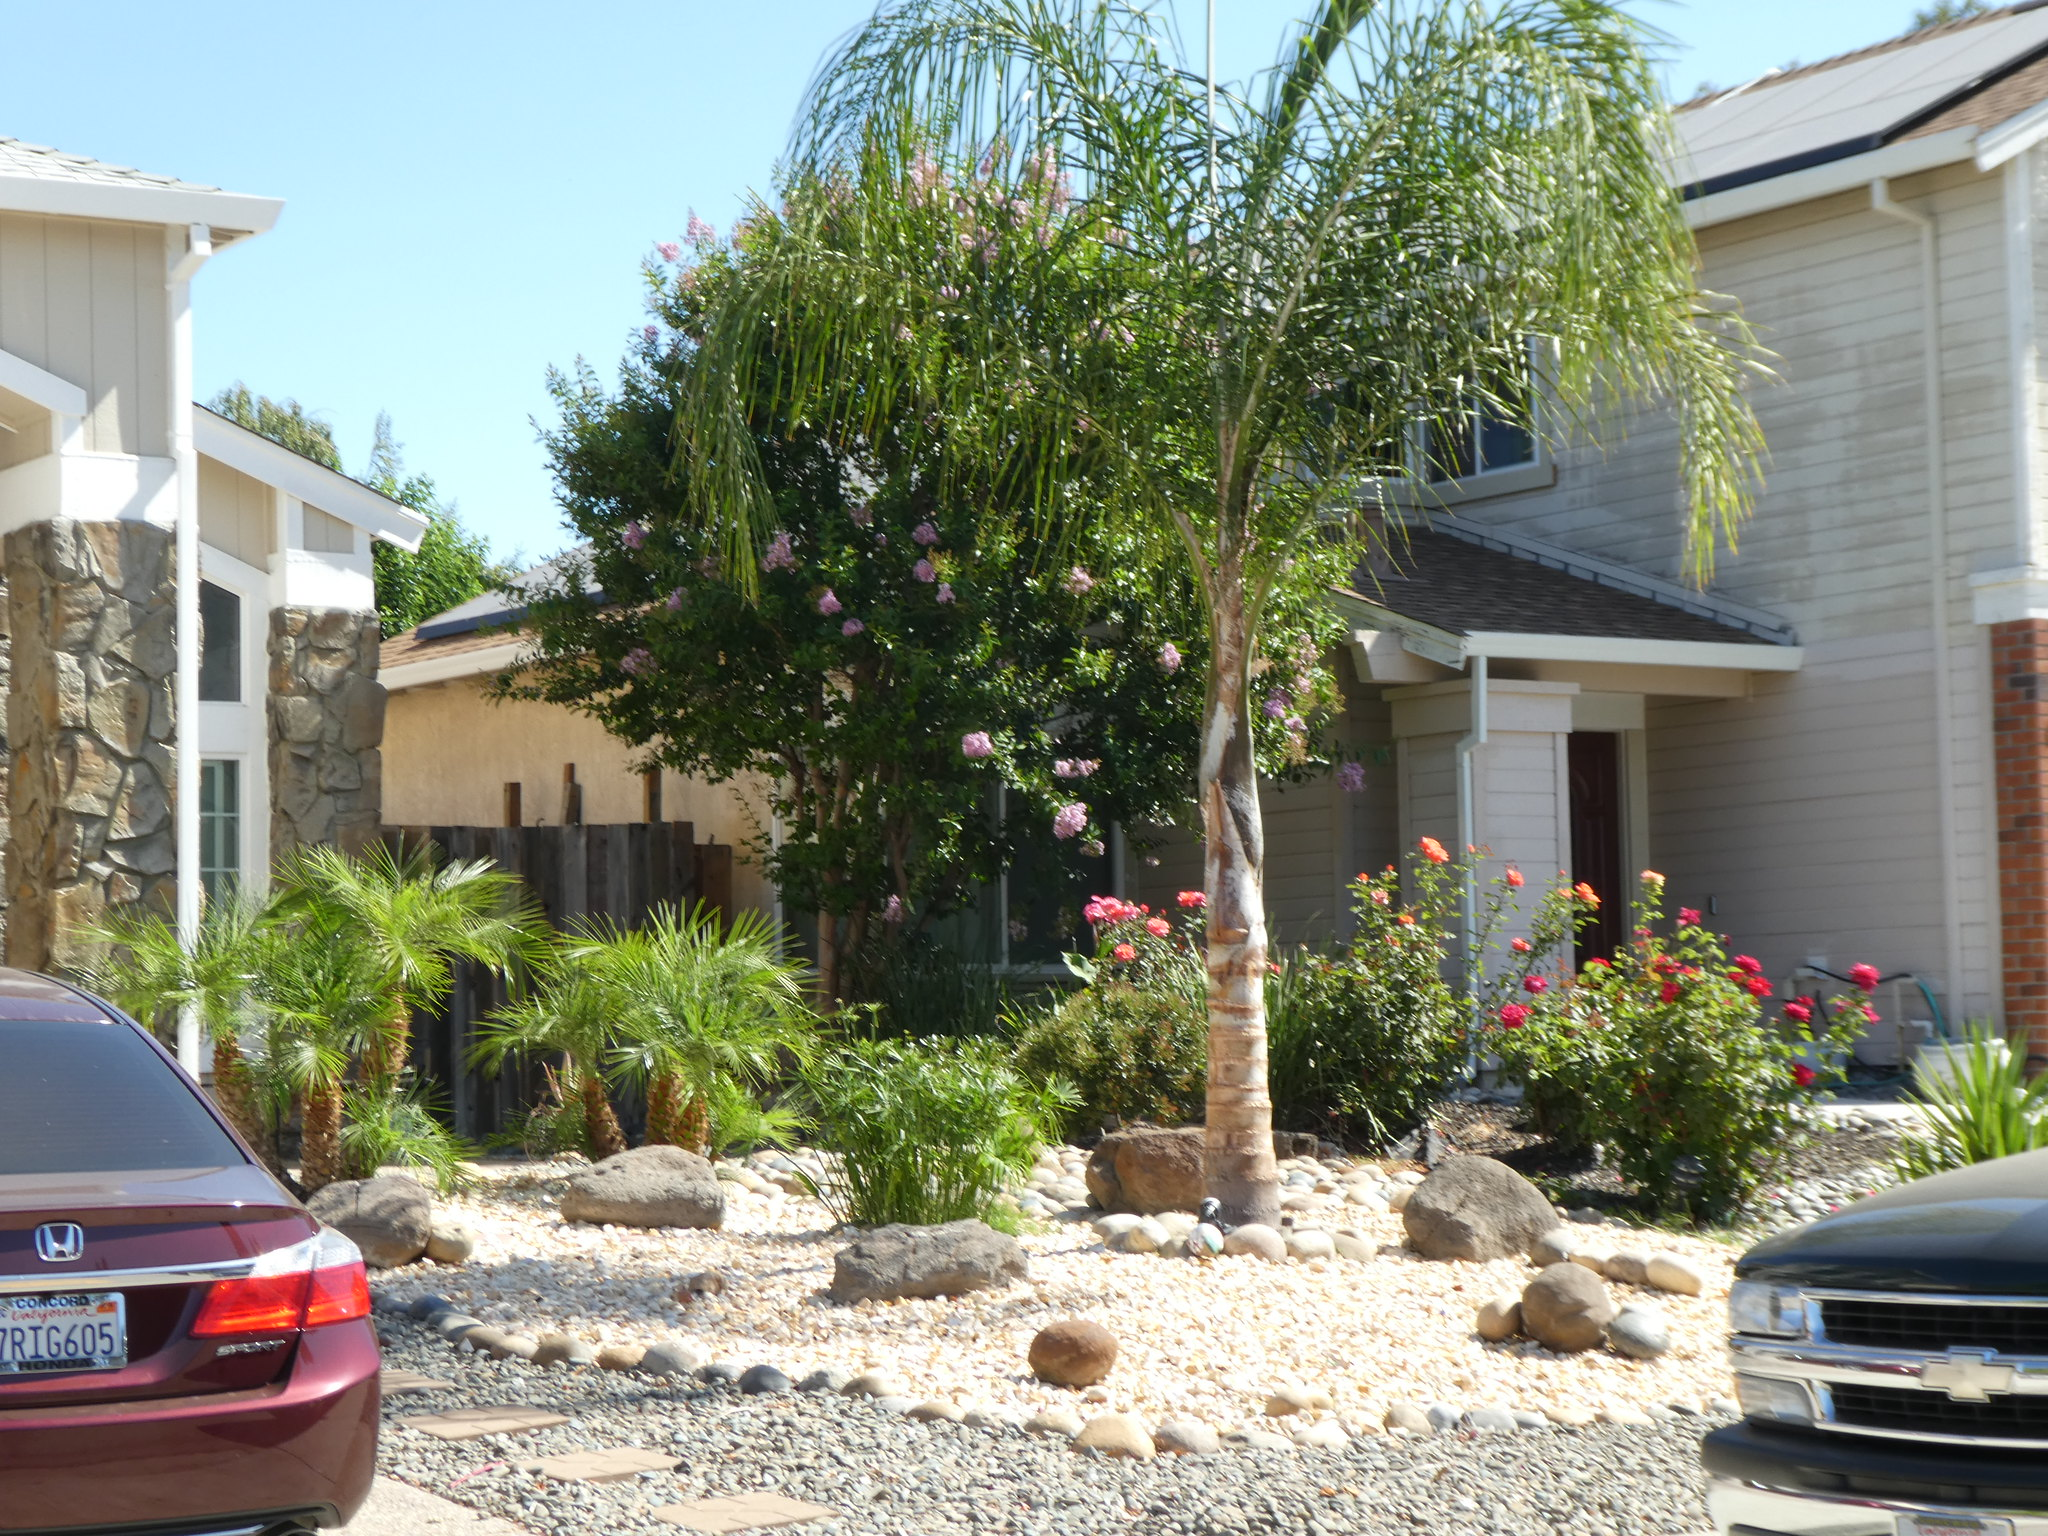 2018-06-29 - Well maintained Front yards